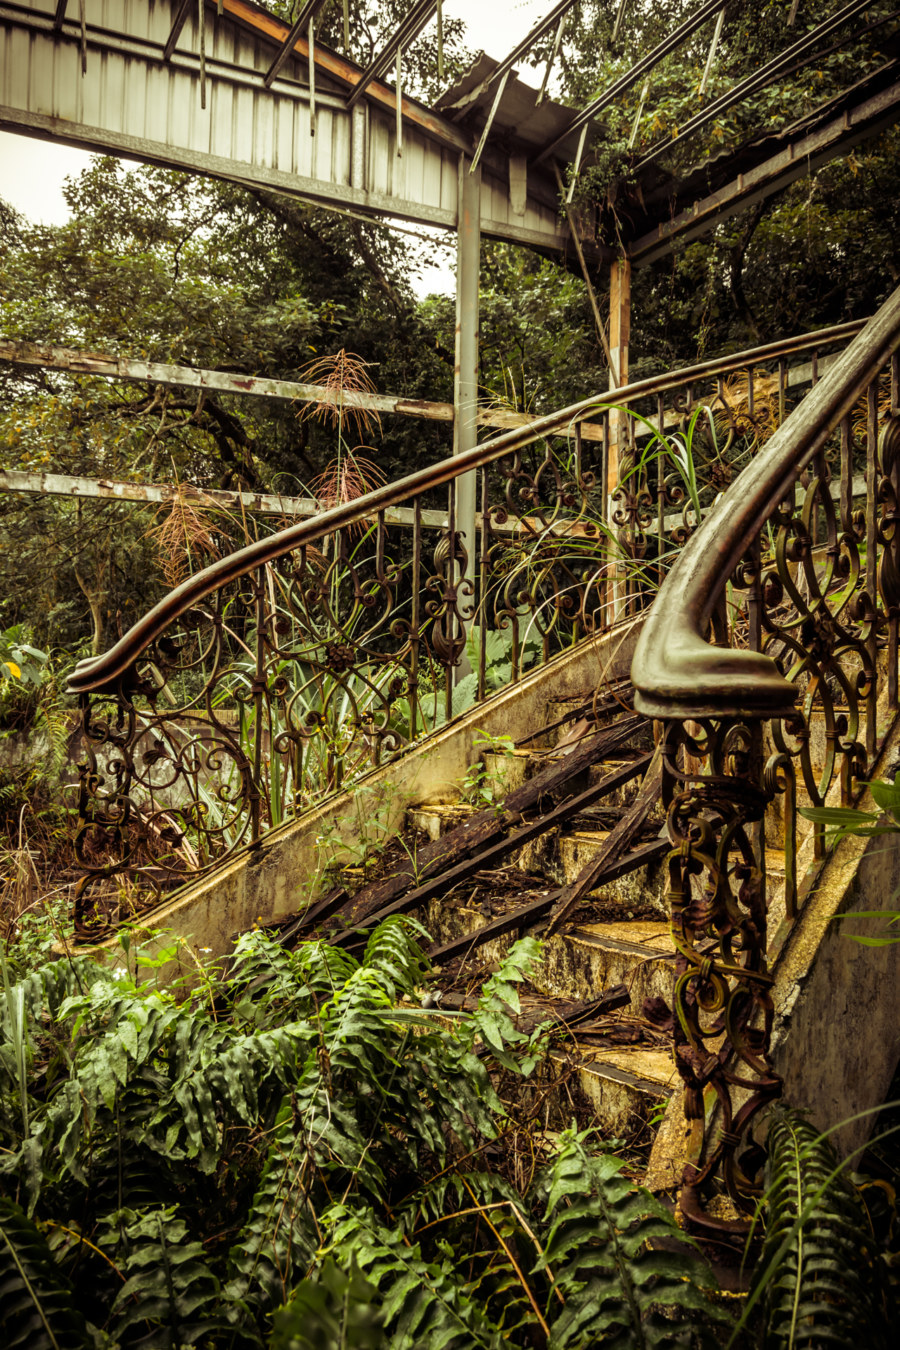 A closer look at the gorgeous old stairway at the top of the Yongye road hotel